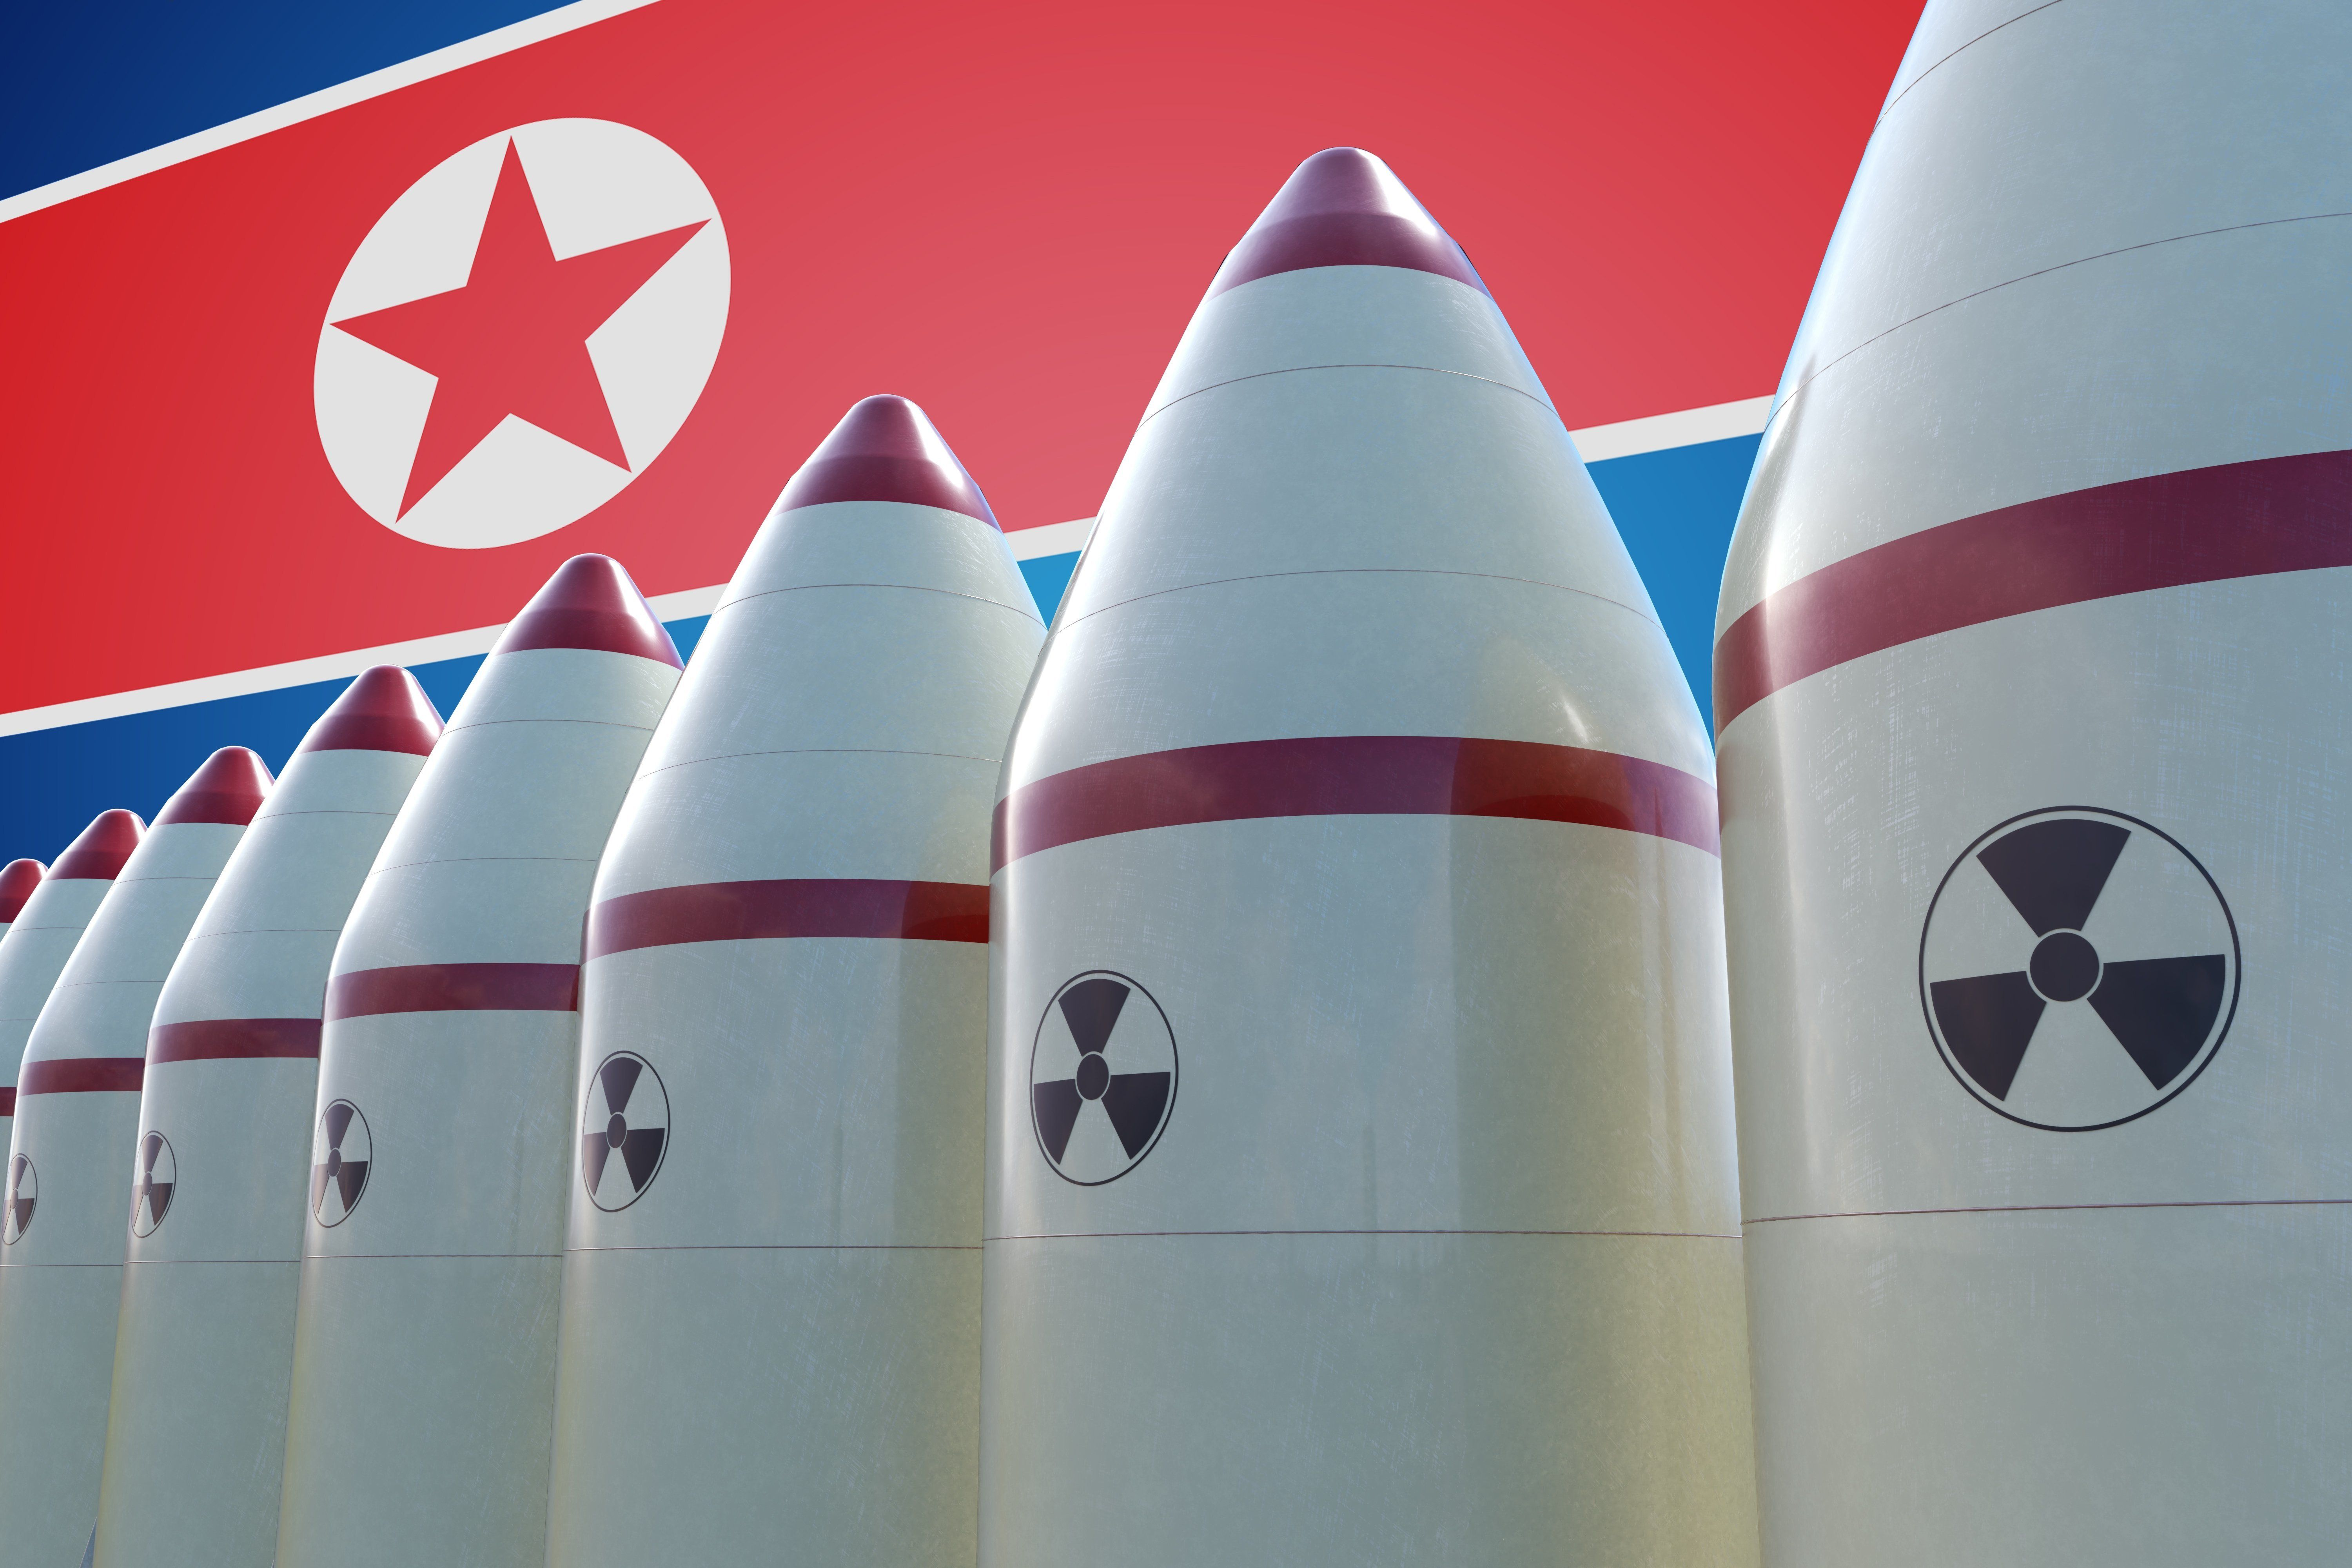 Nuclear missiles and North Korea flag in background. 3D rendered illustration.